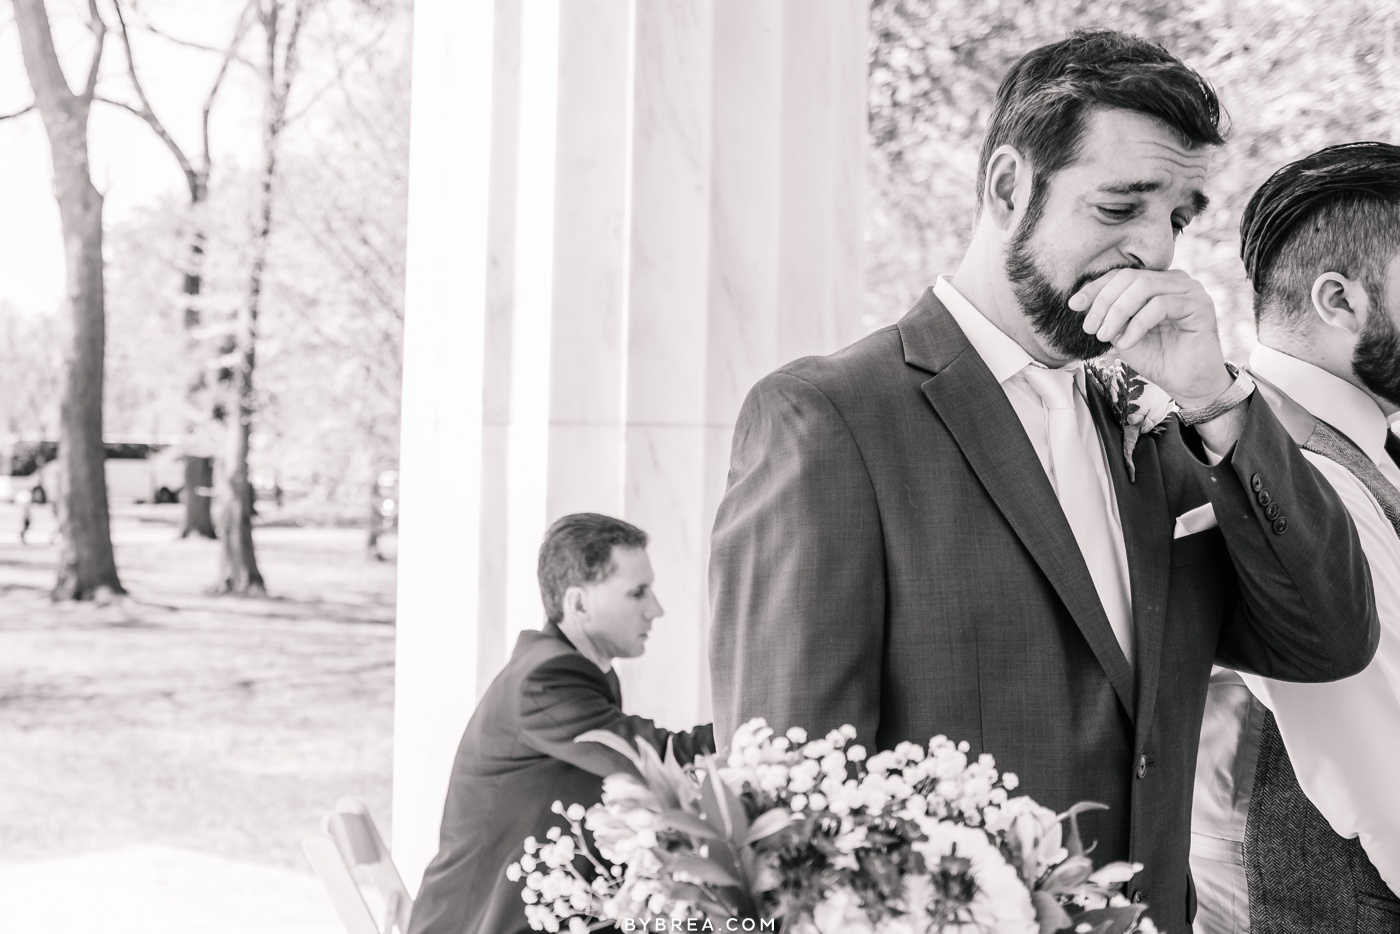 Photo of grooms reaction of seeing bride for first time D.C. War Memorial wedding